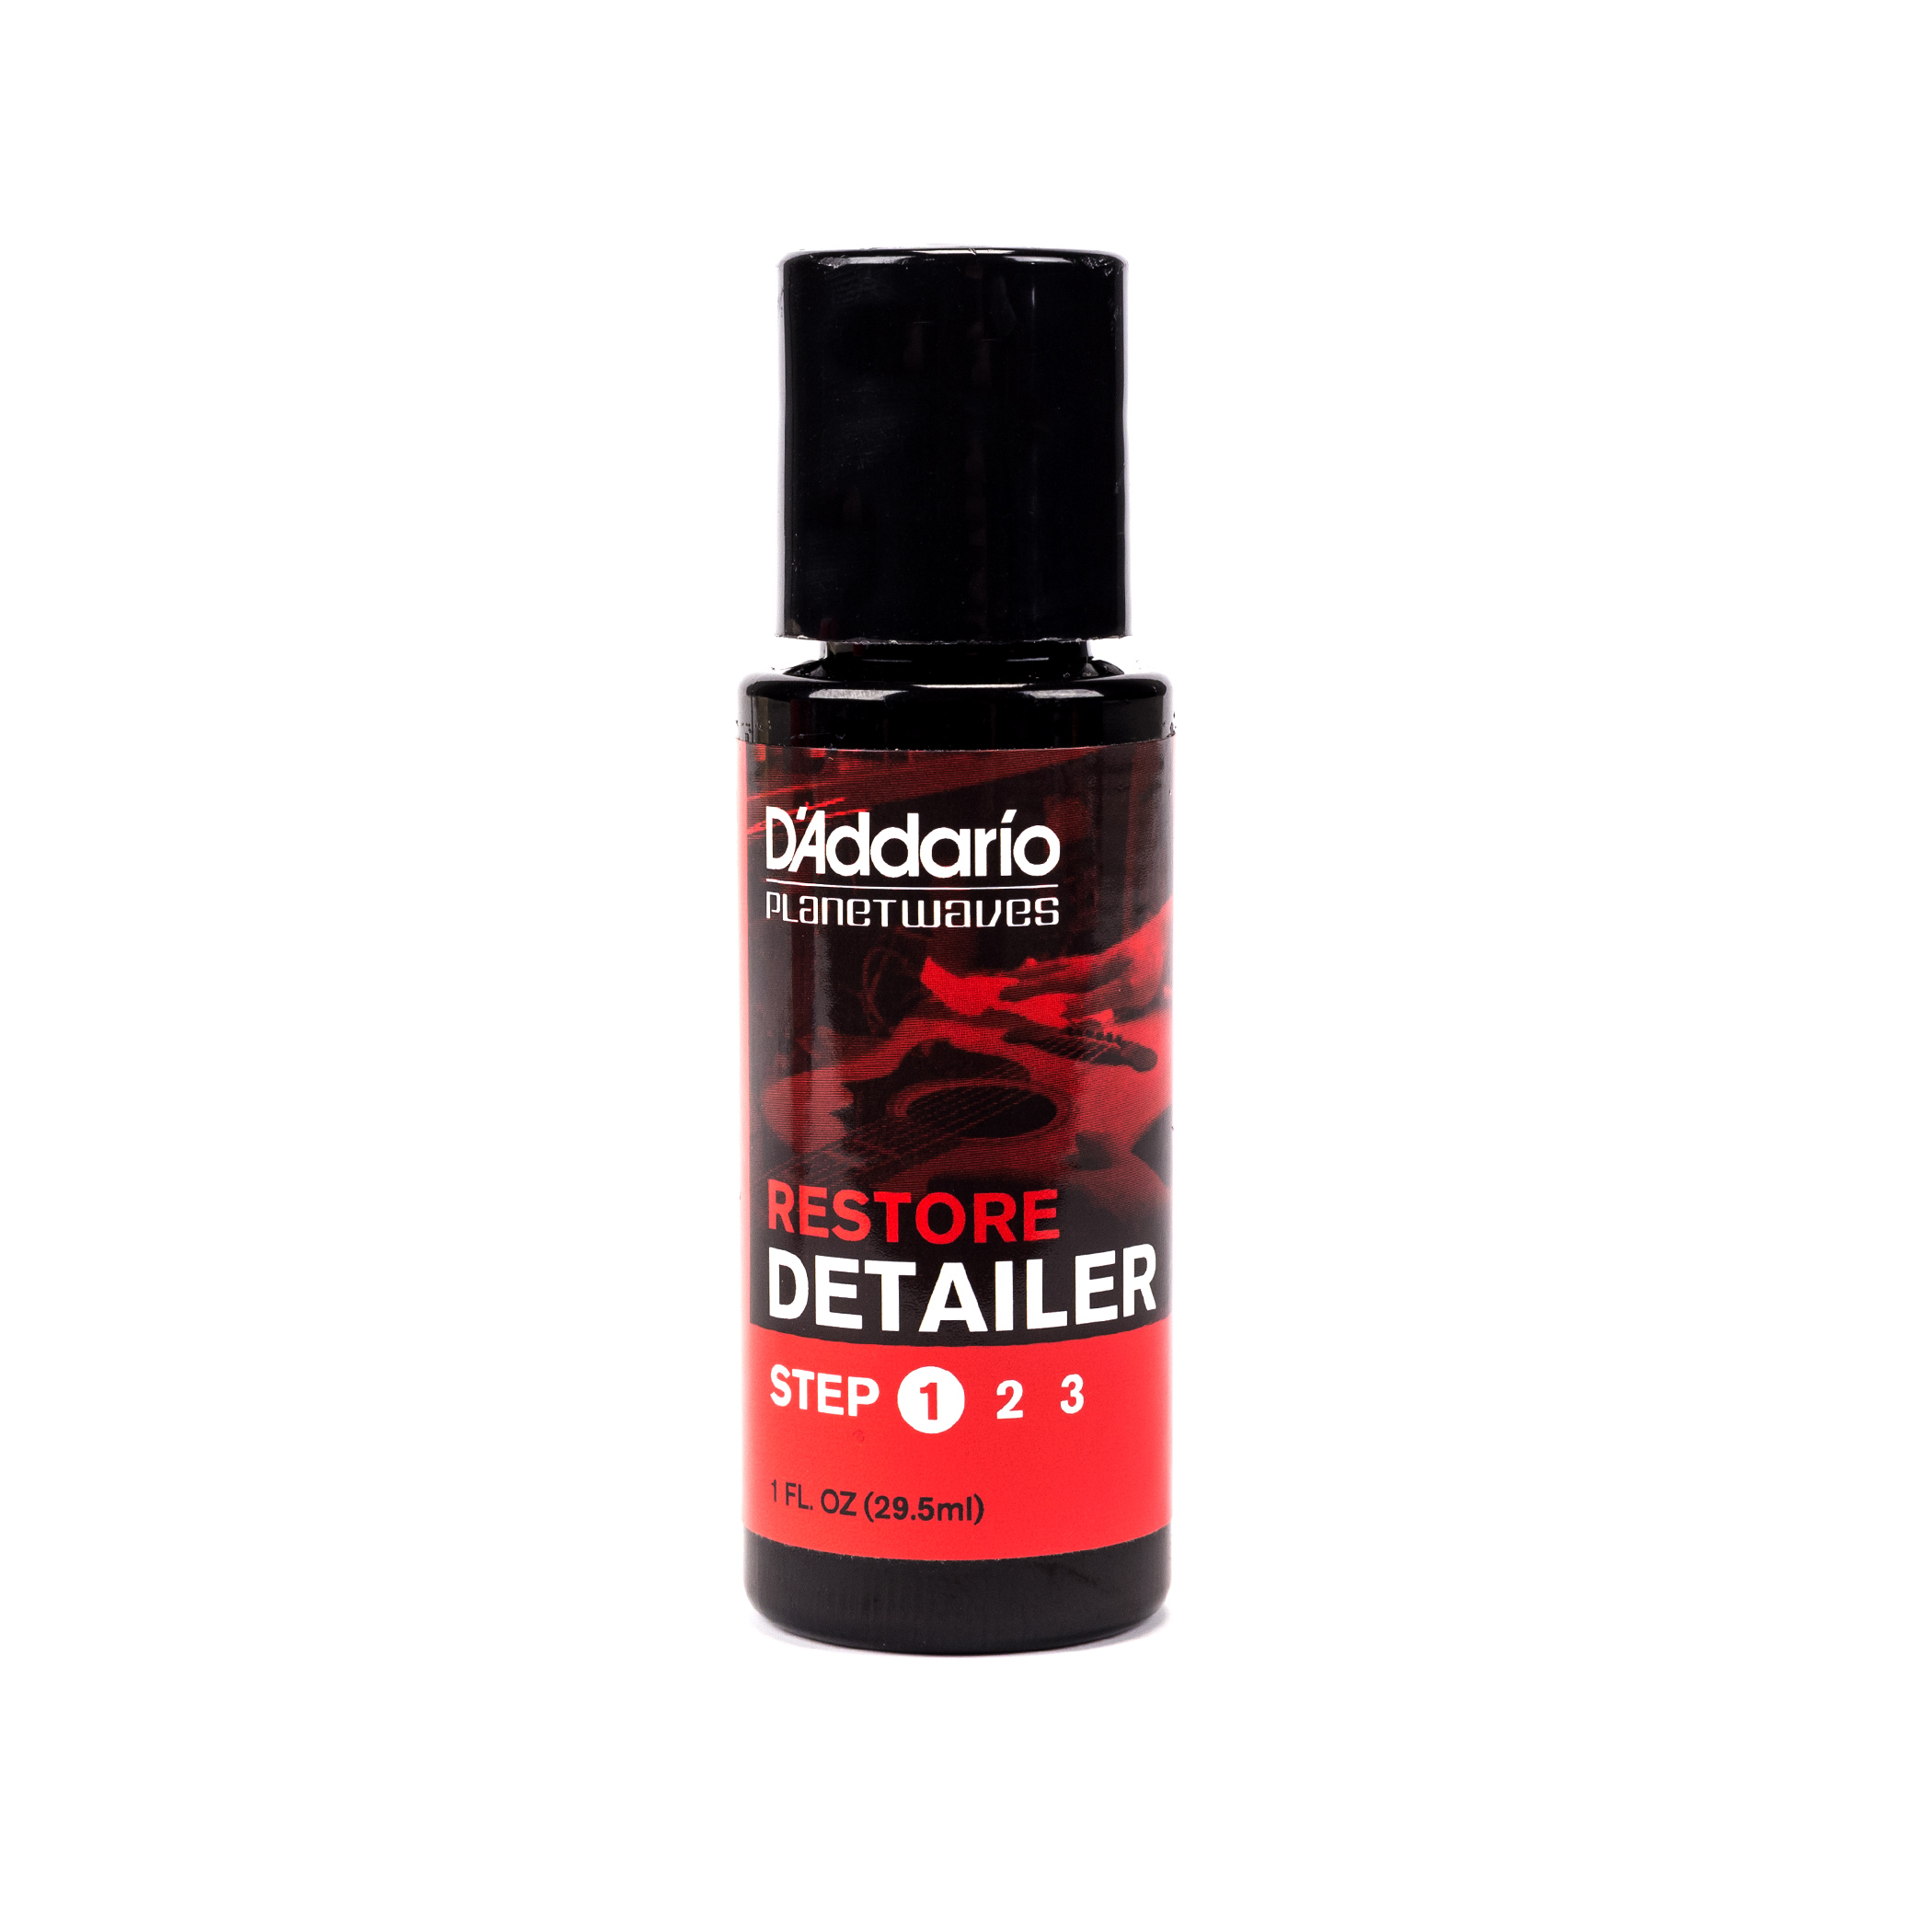 Restore - Deep Cleaning Cream Polish 1oz., by D'Addario